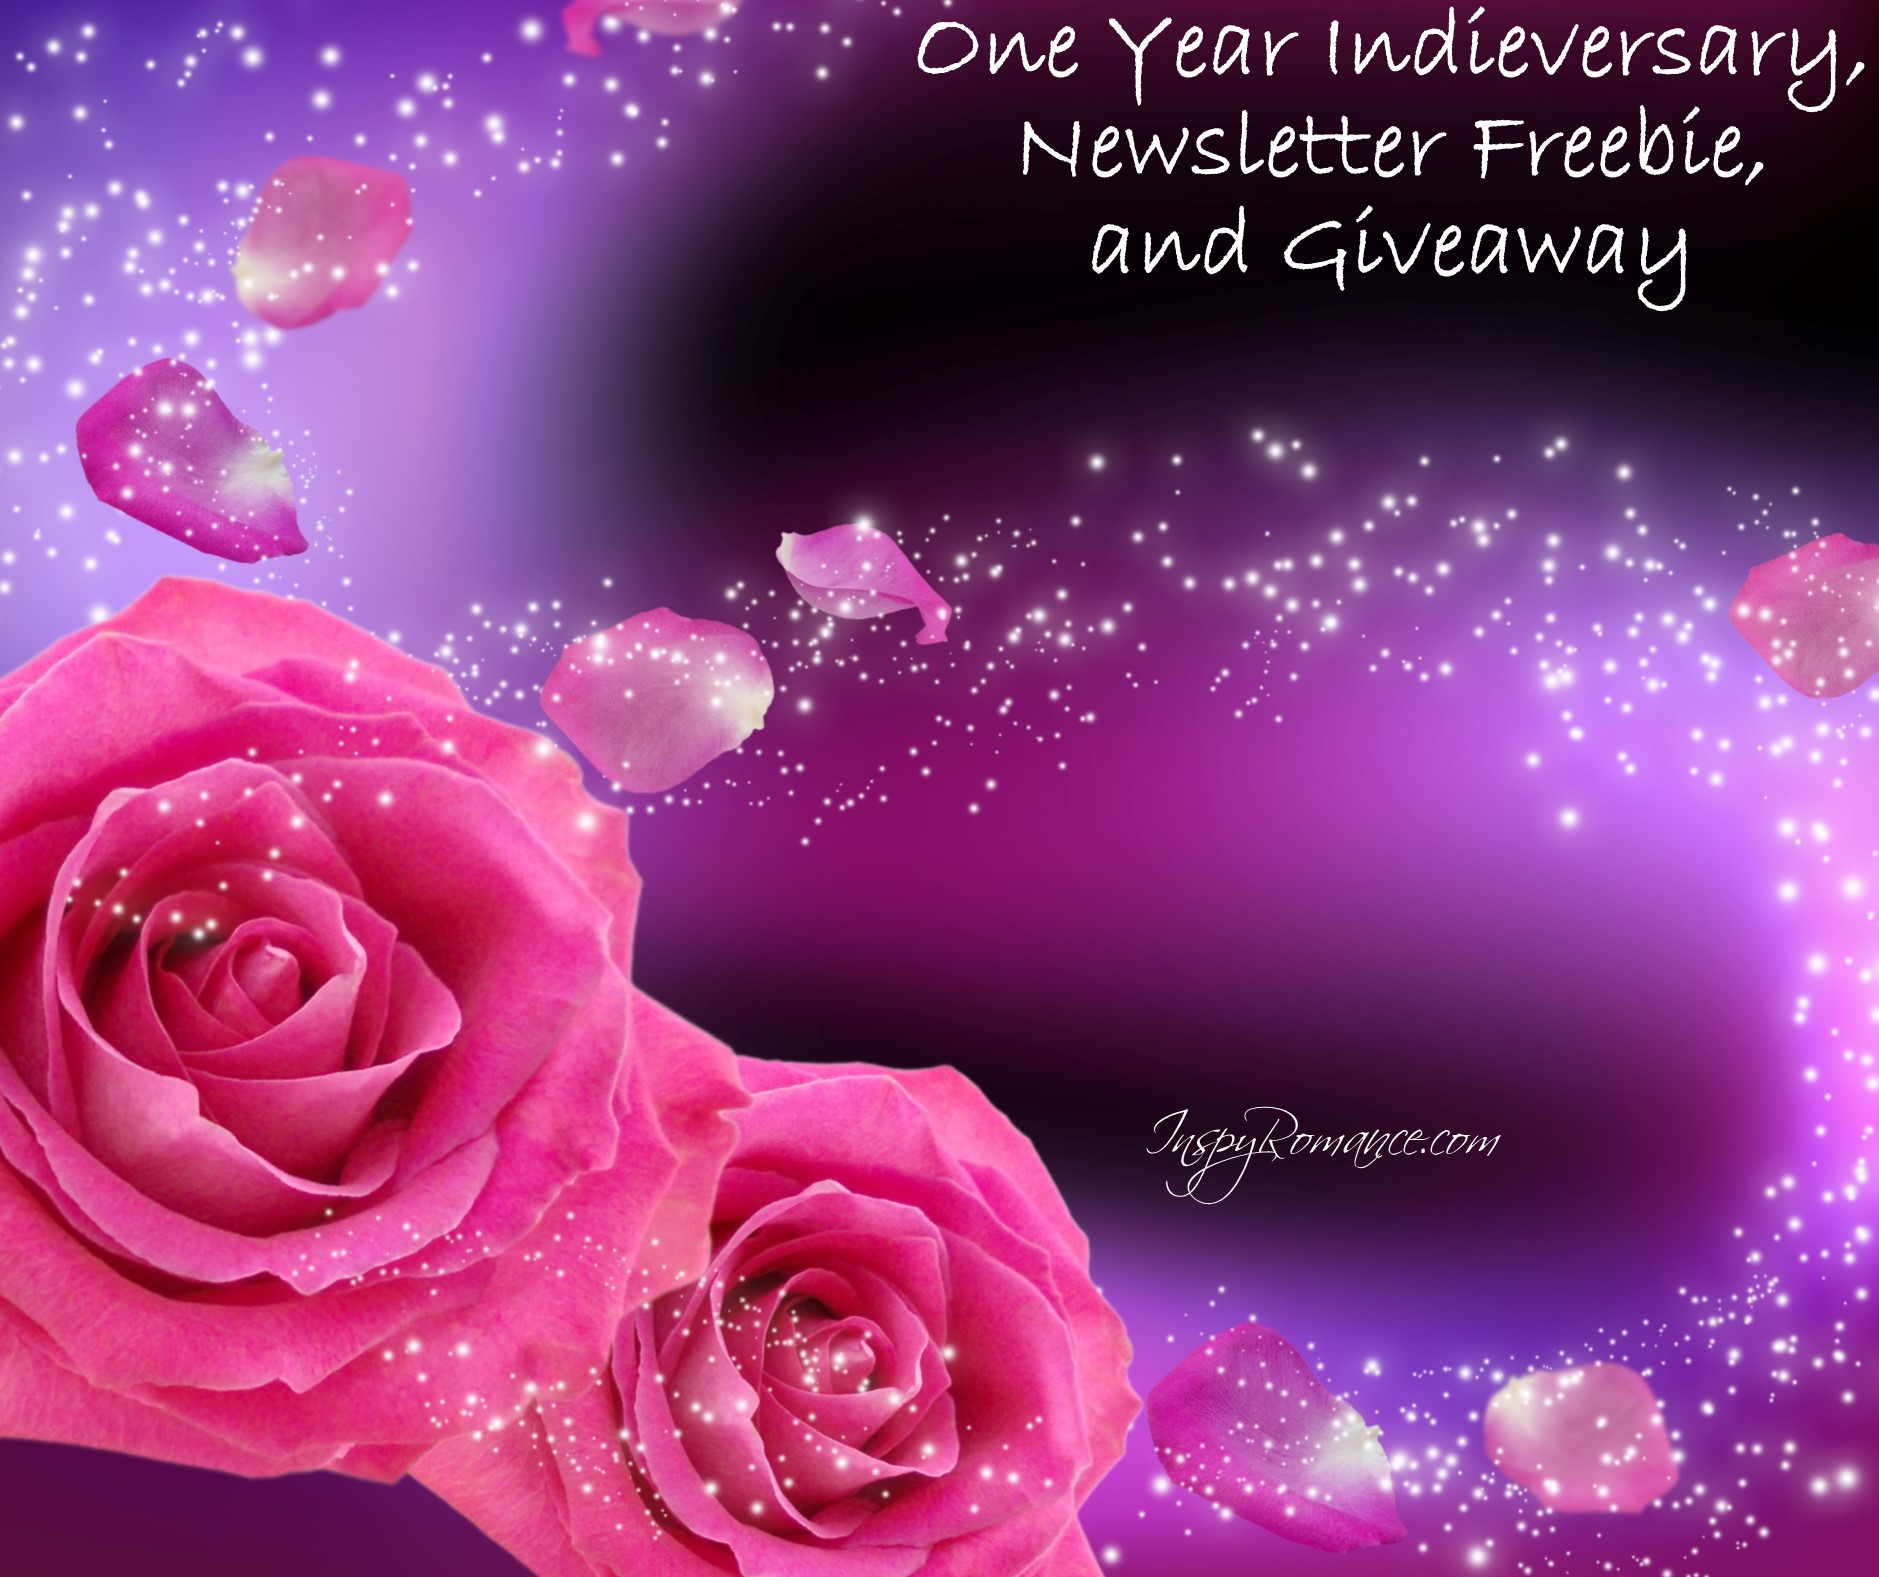 Indieversary and Giveaway 3